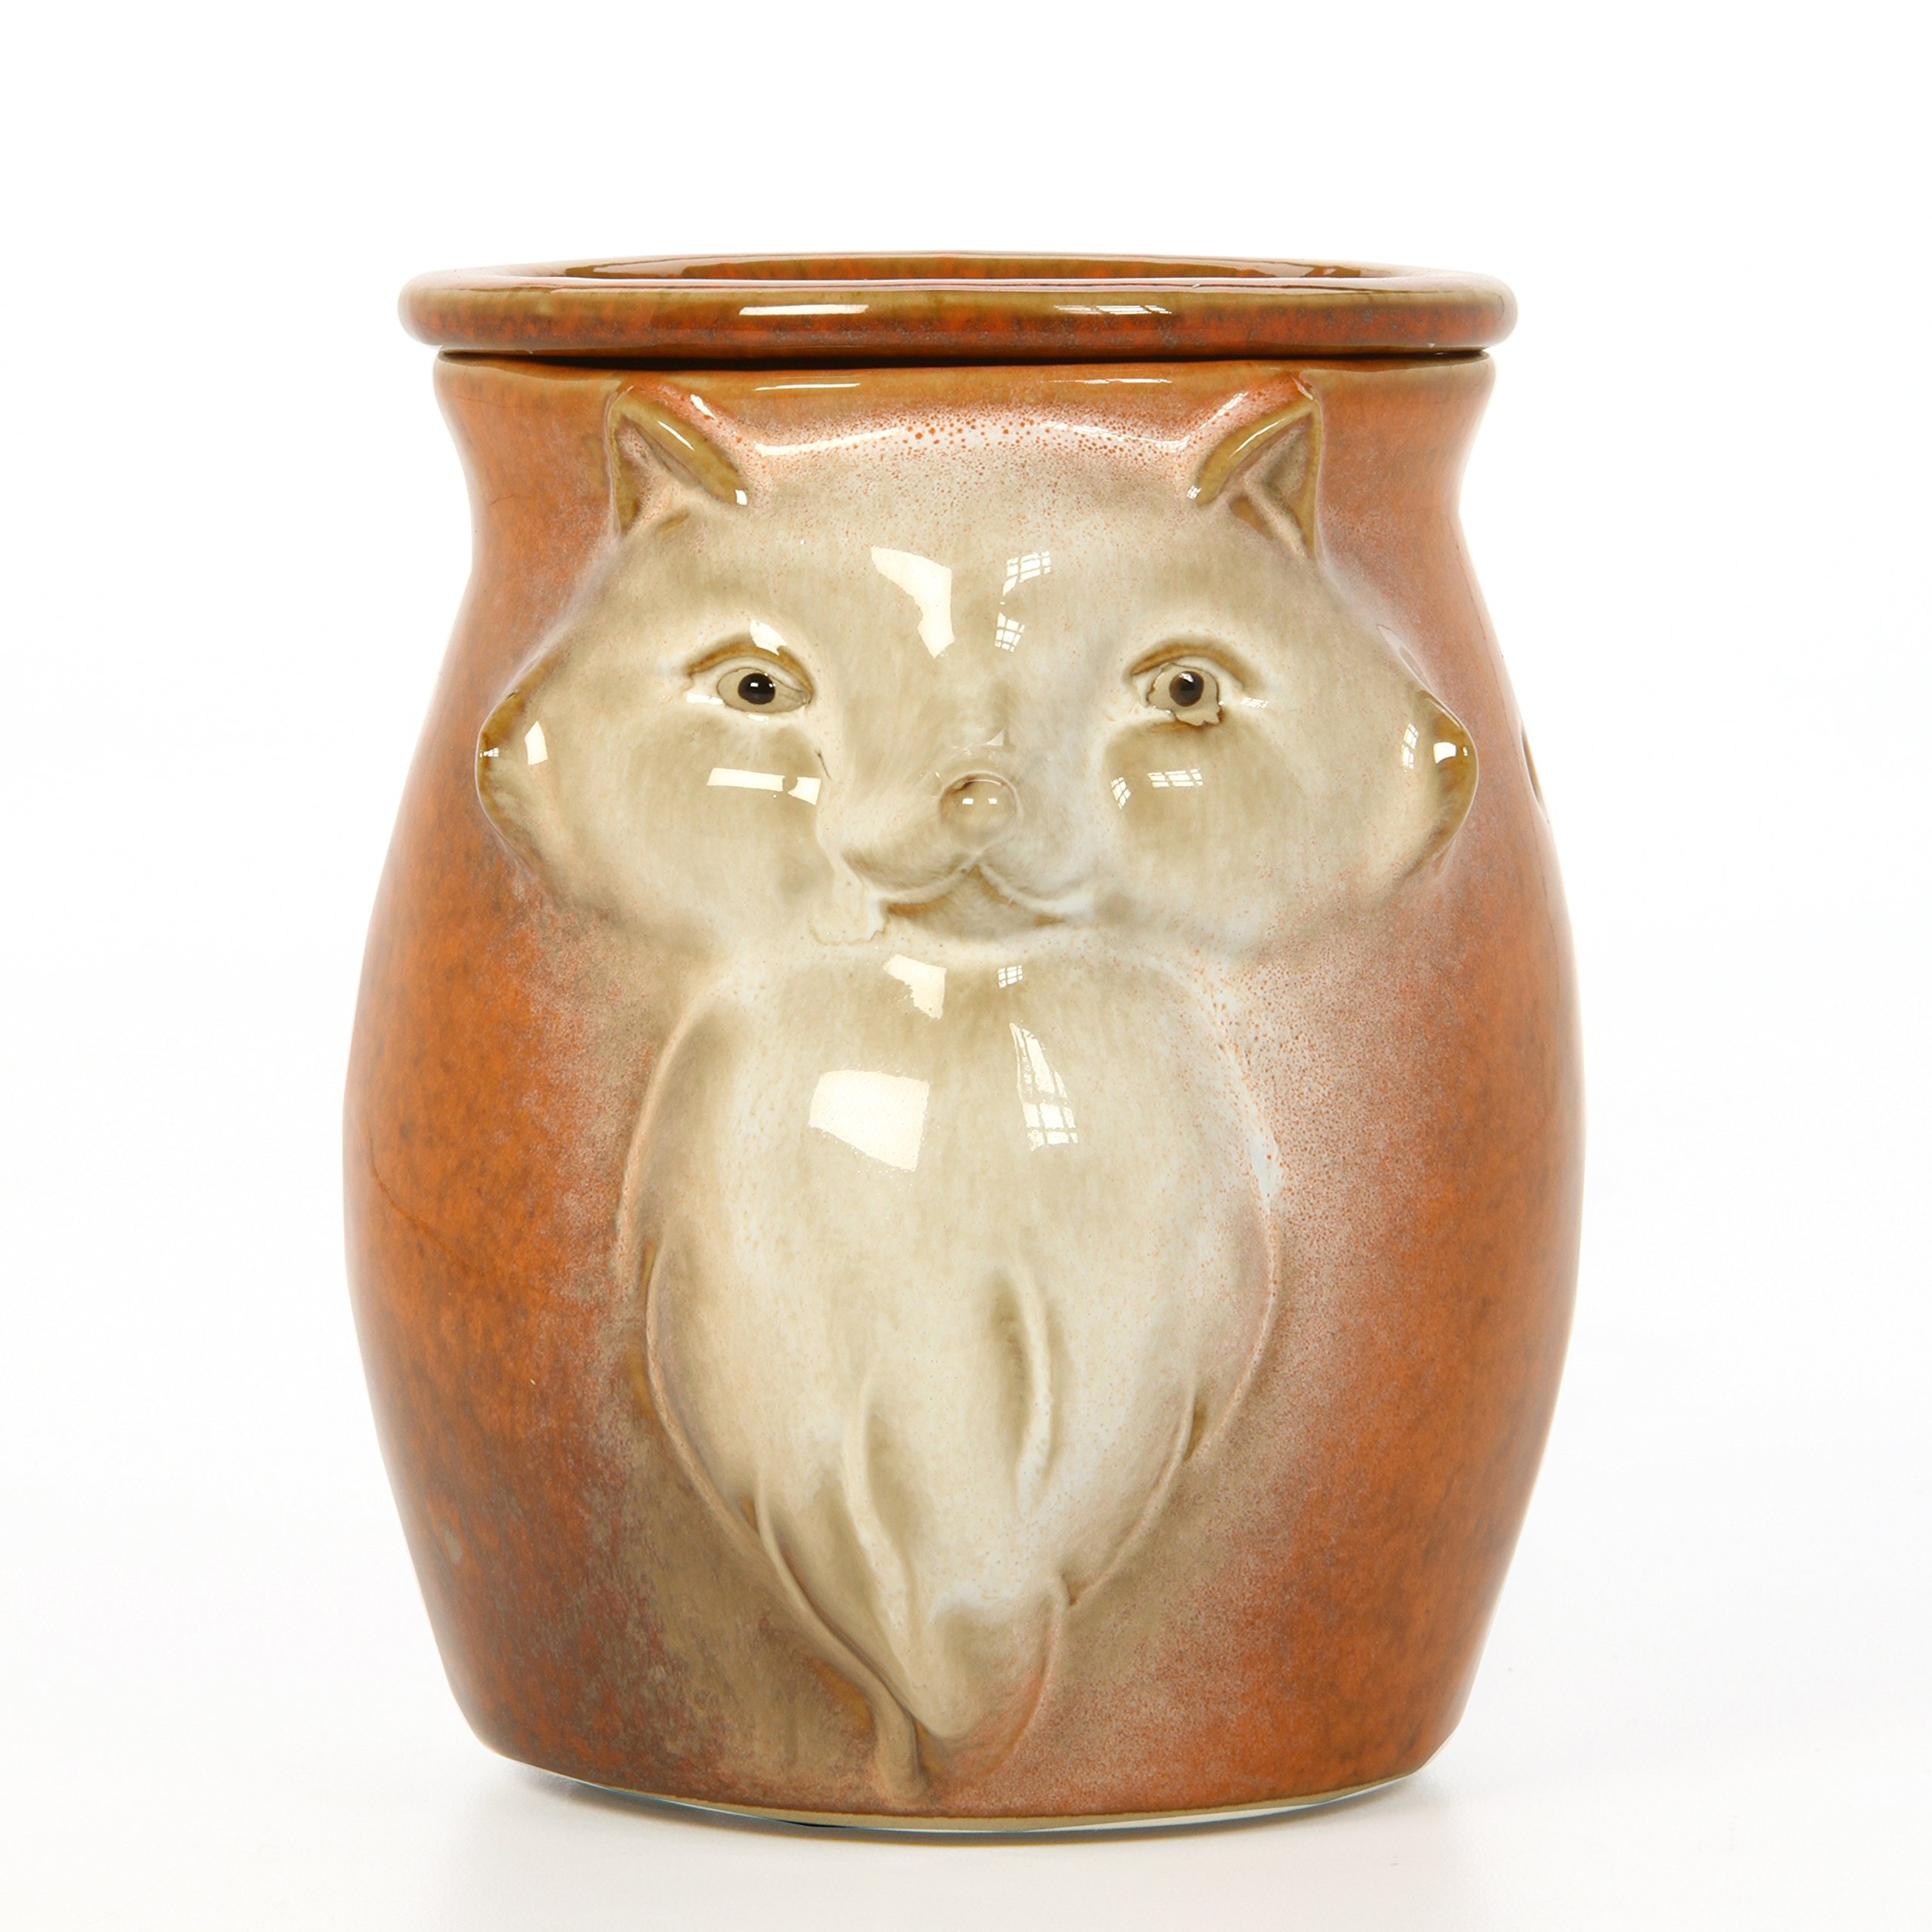 Hosley 5'' High Orange Woodland Animal Ceramic Electric Oil Warmer. Ideal Gift for Wedding, Spa and Aromatherapy. Use Brand Fragrance Oils, Essential Oils and Wax Melts/Cubes. P2